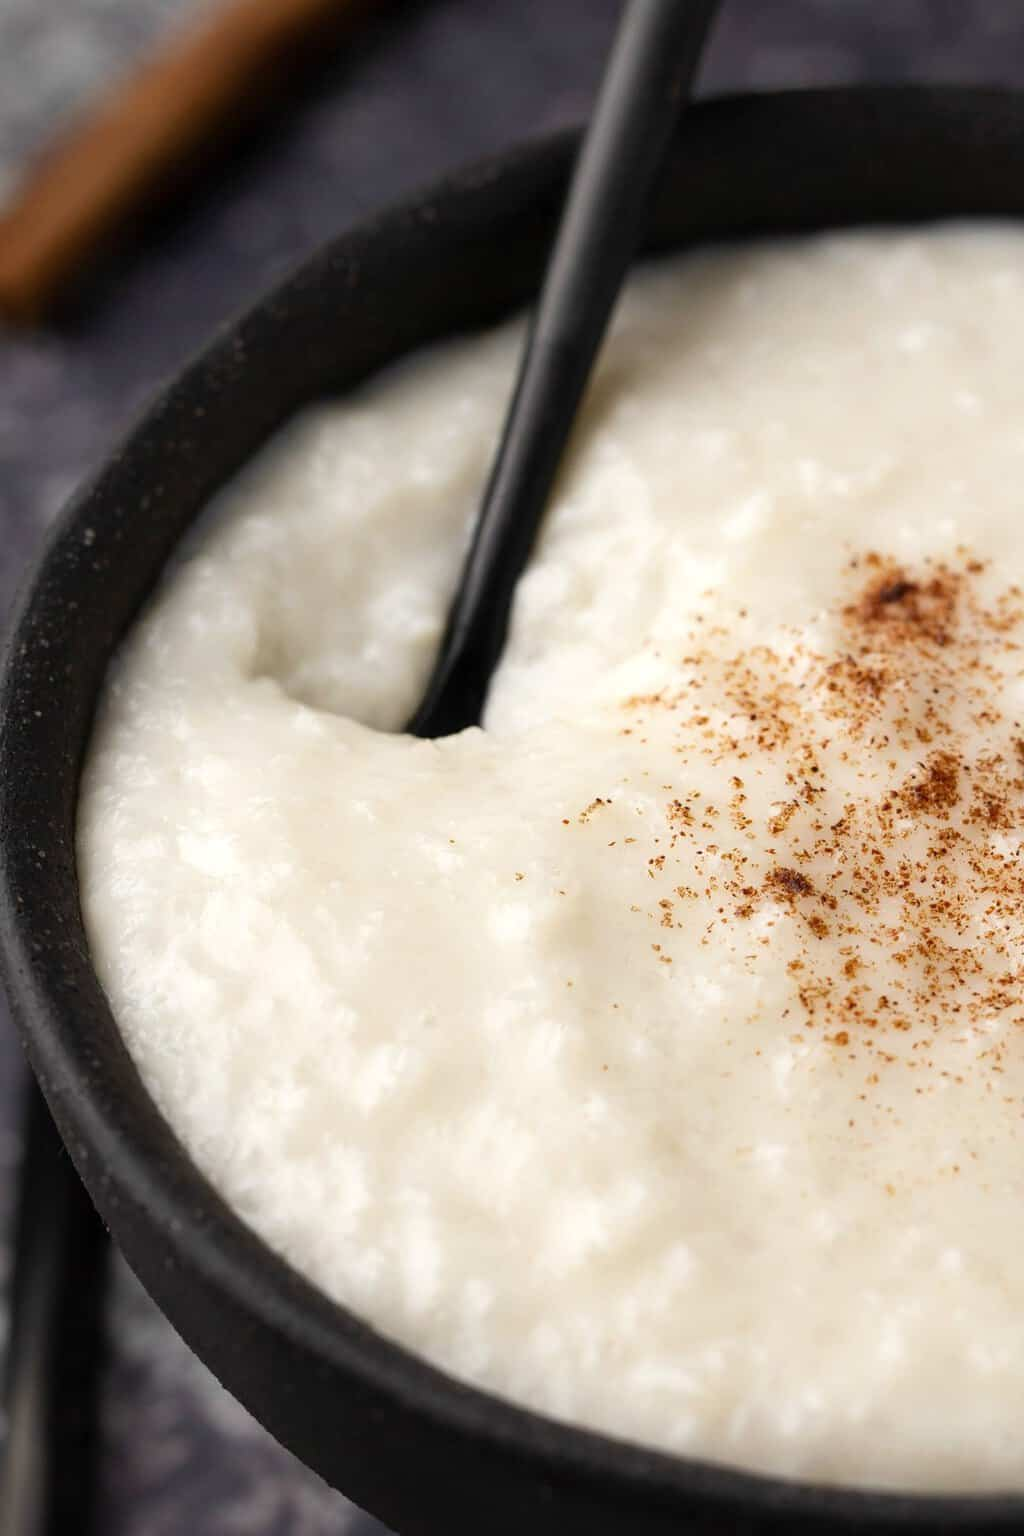 Vegan rice pudding in a black bowl with a spoon.